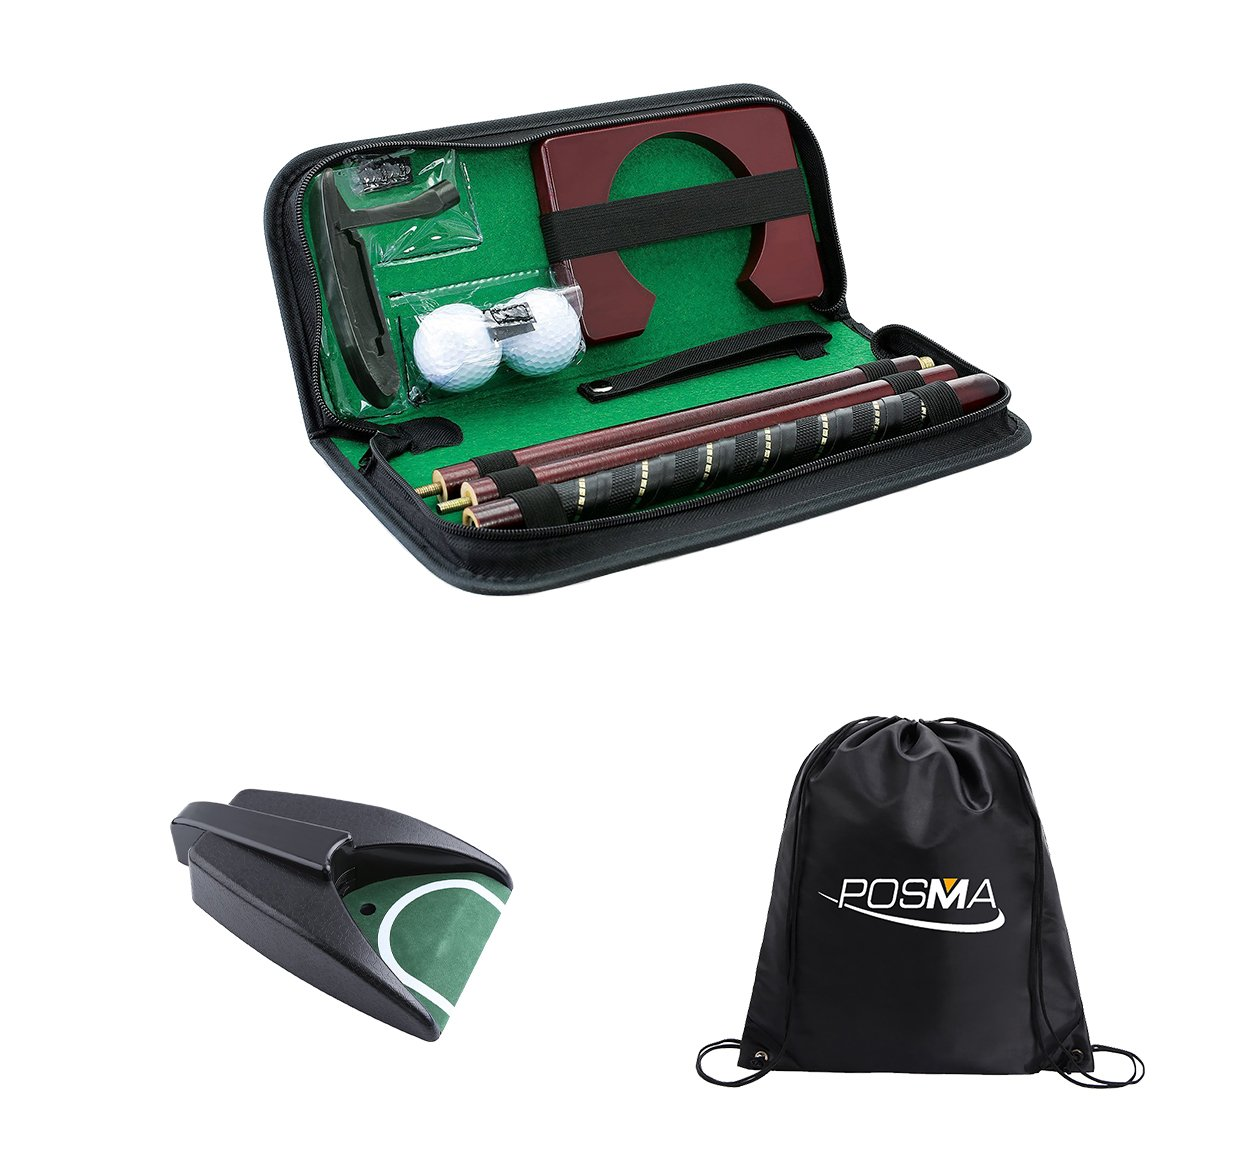 POSMA PG020AD Golf Putter kit set with auto reverse electric putting hole in a golfers carry bag, putter club, 2pcs golf balls - perfect for Indoor outdoor golf putting training practice aid by POSMA (Image #1)